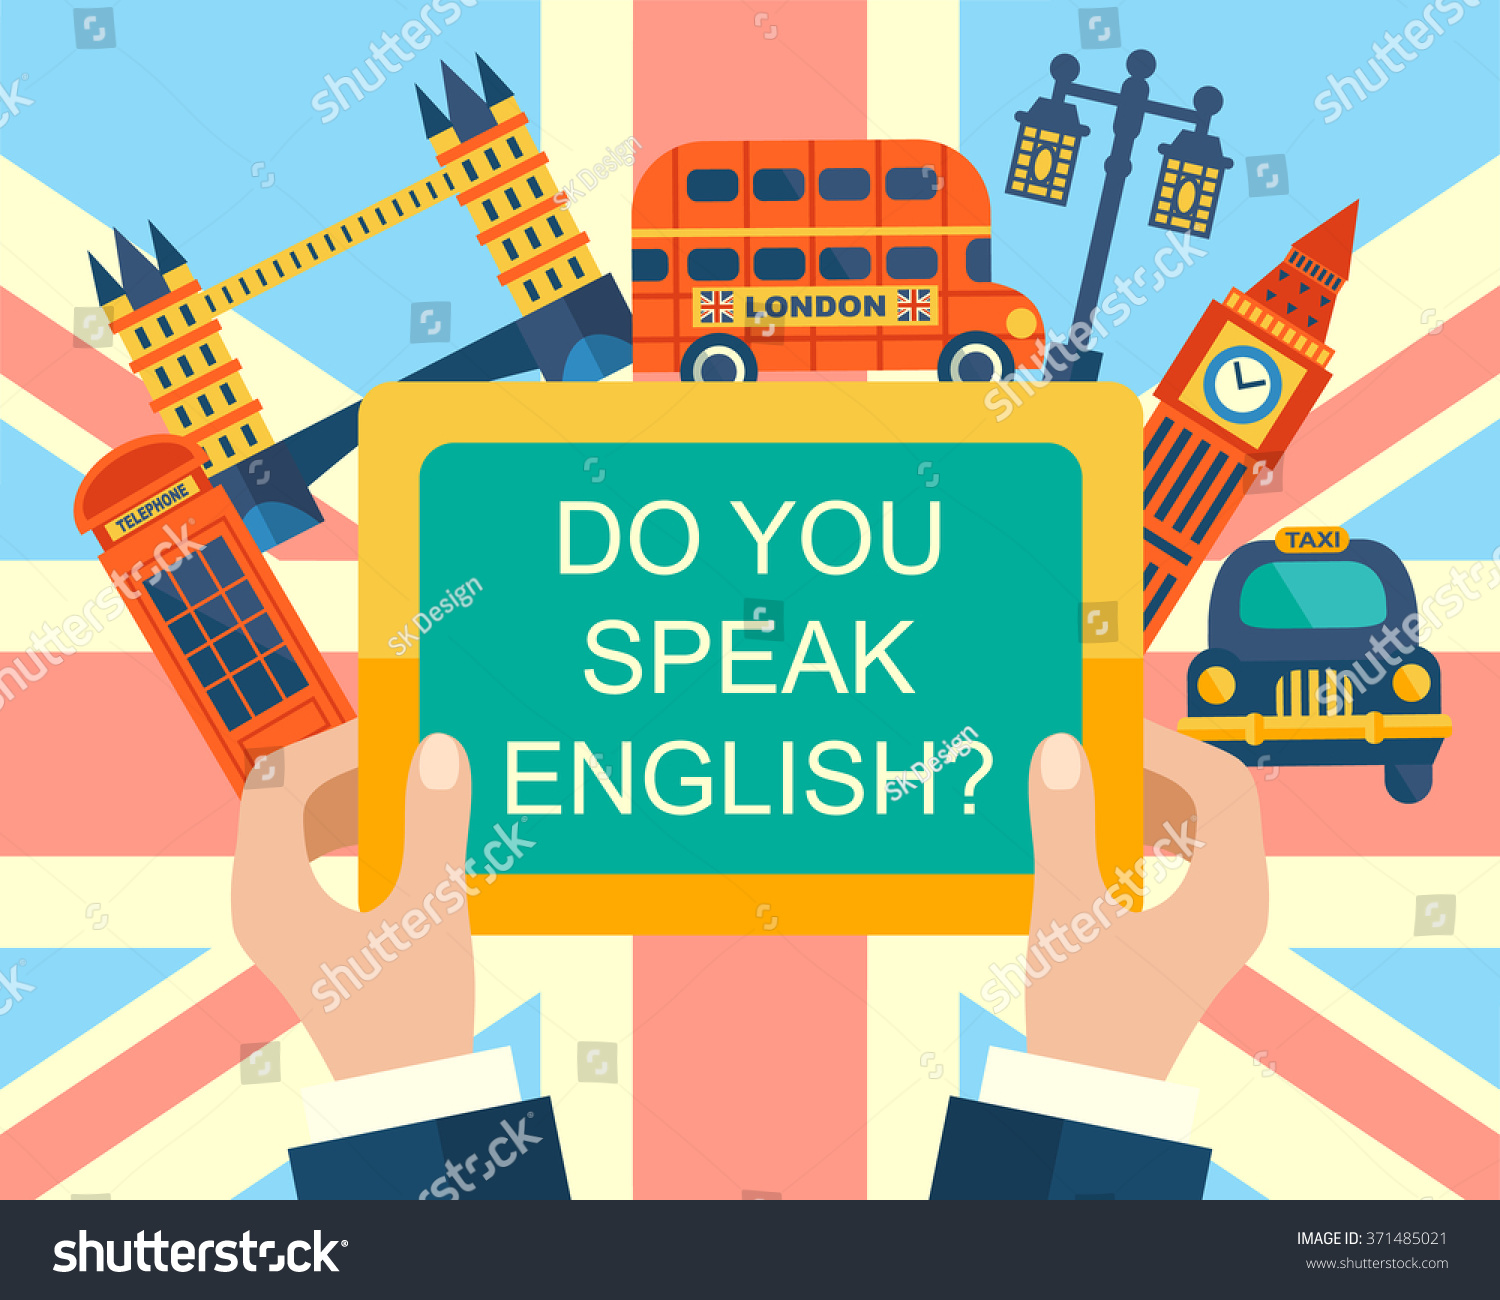 Character Design Course London : Do you speak english course banner stock vector